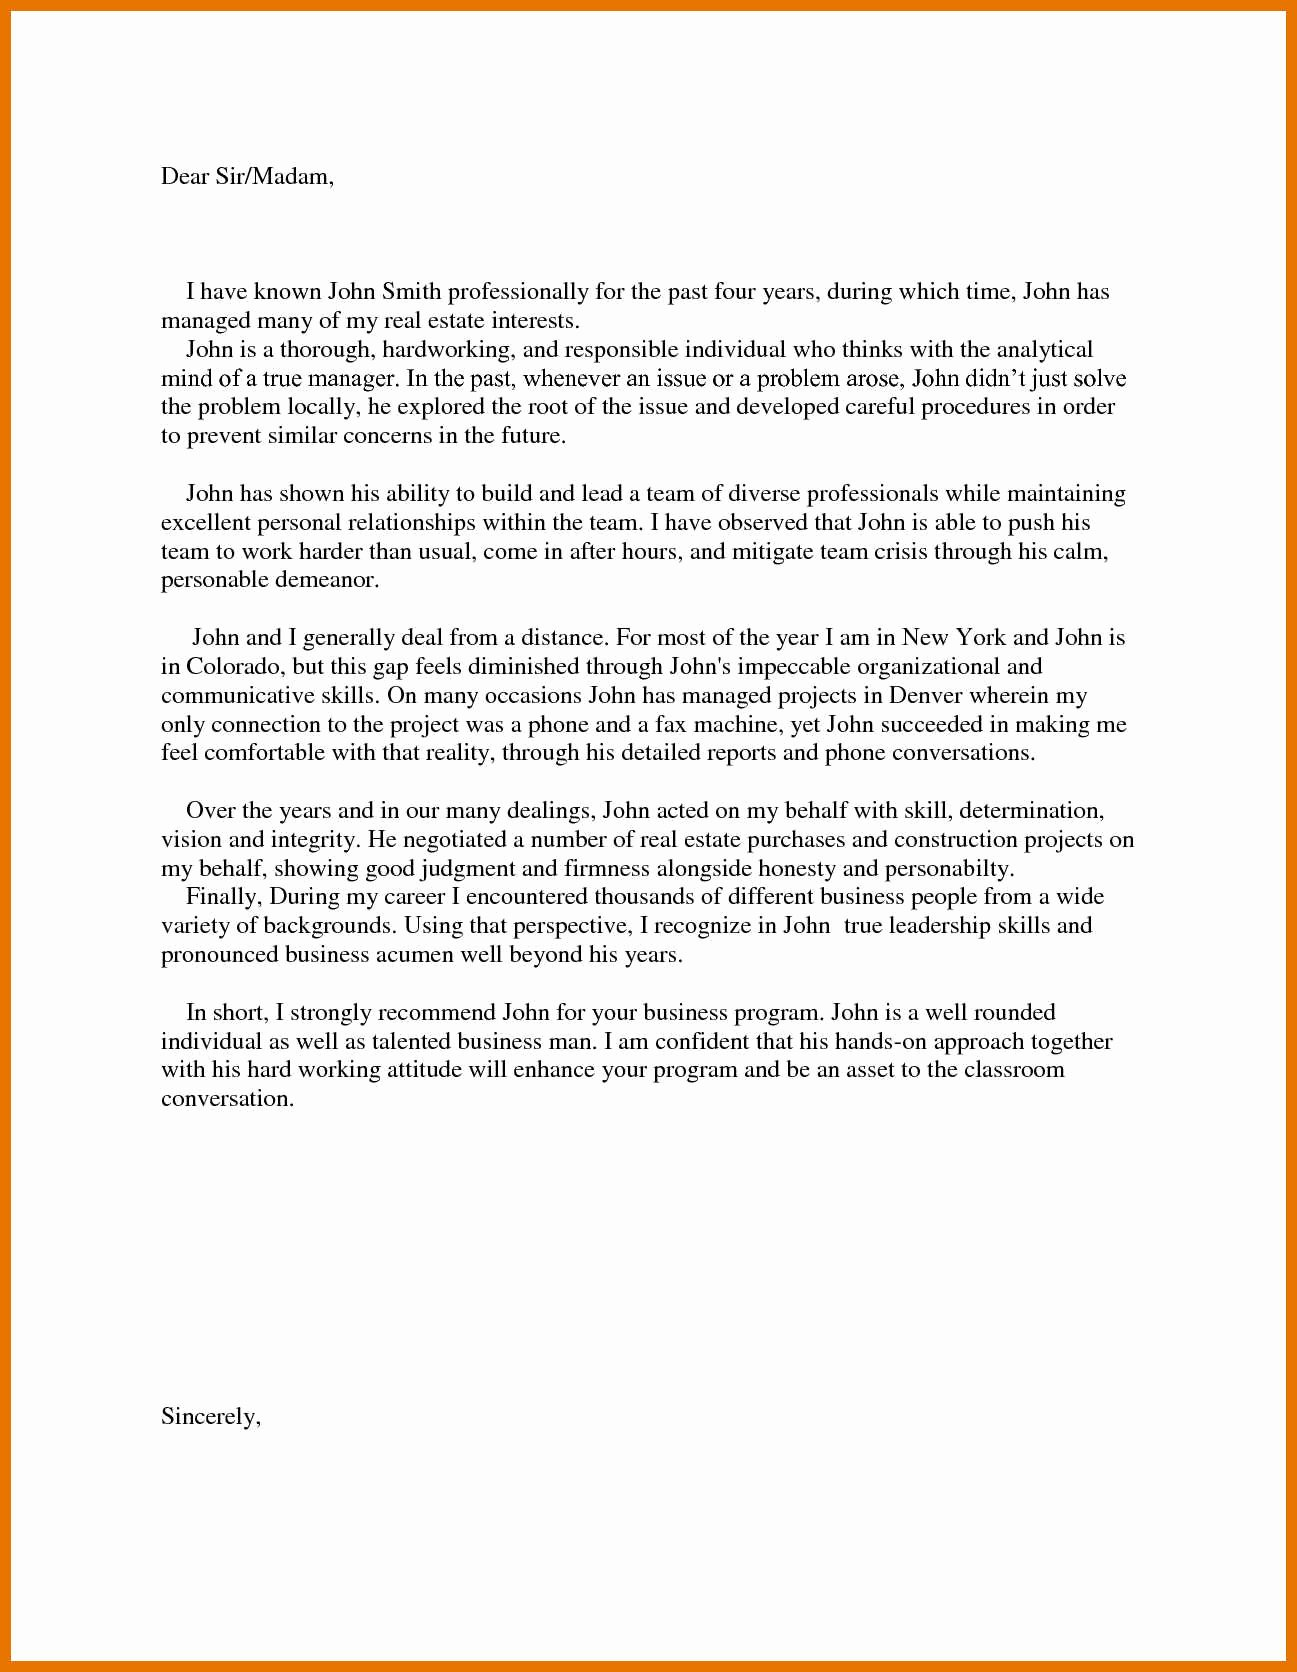 Harvard Letter Of Recommendation Beautiful 5 6 Mba Letter Of Re Mendation Sample